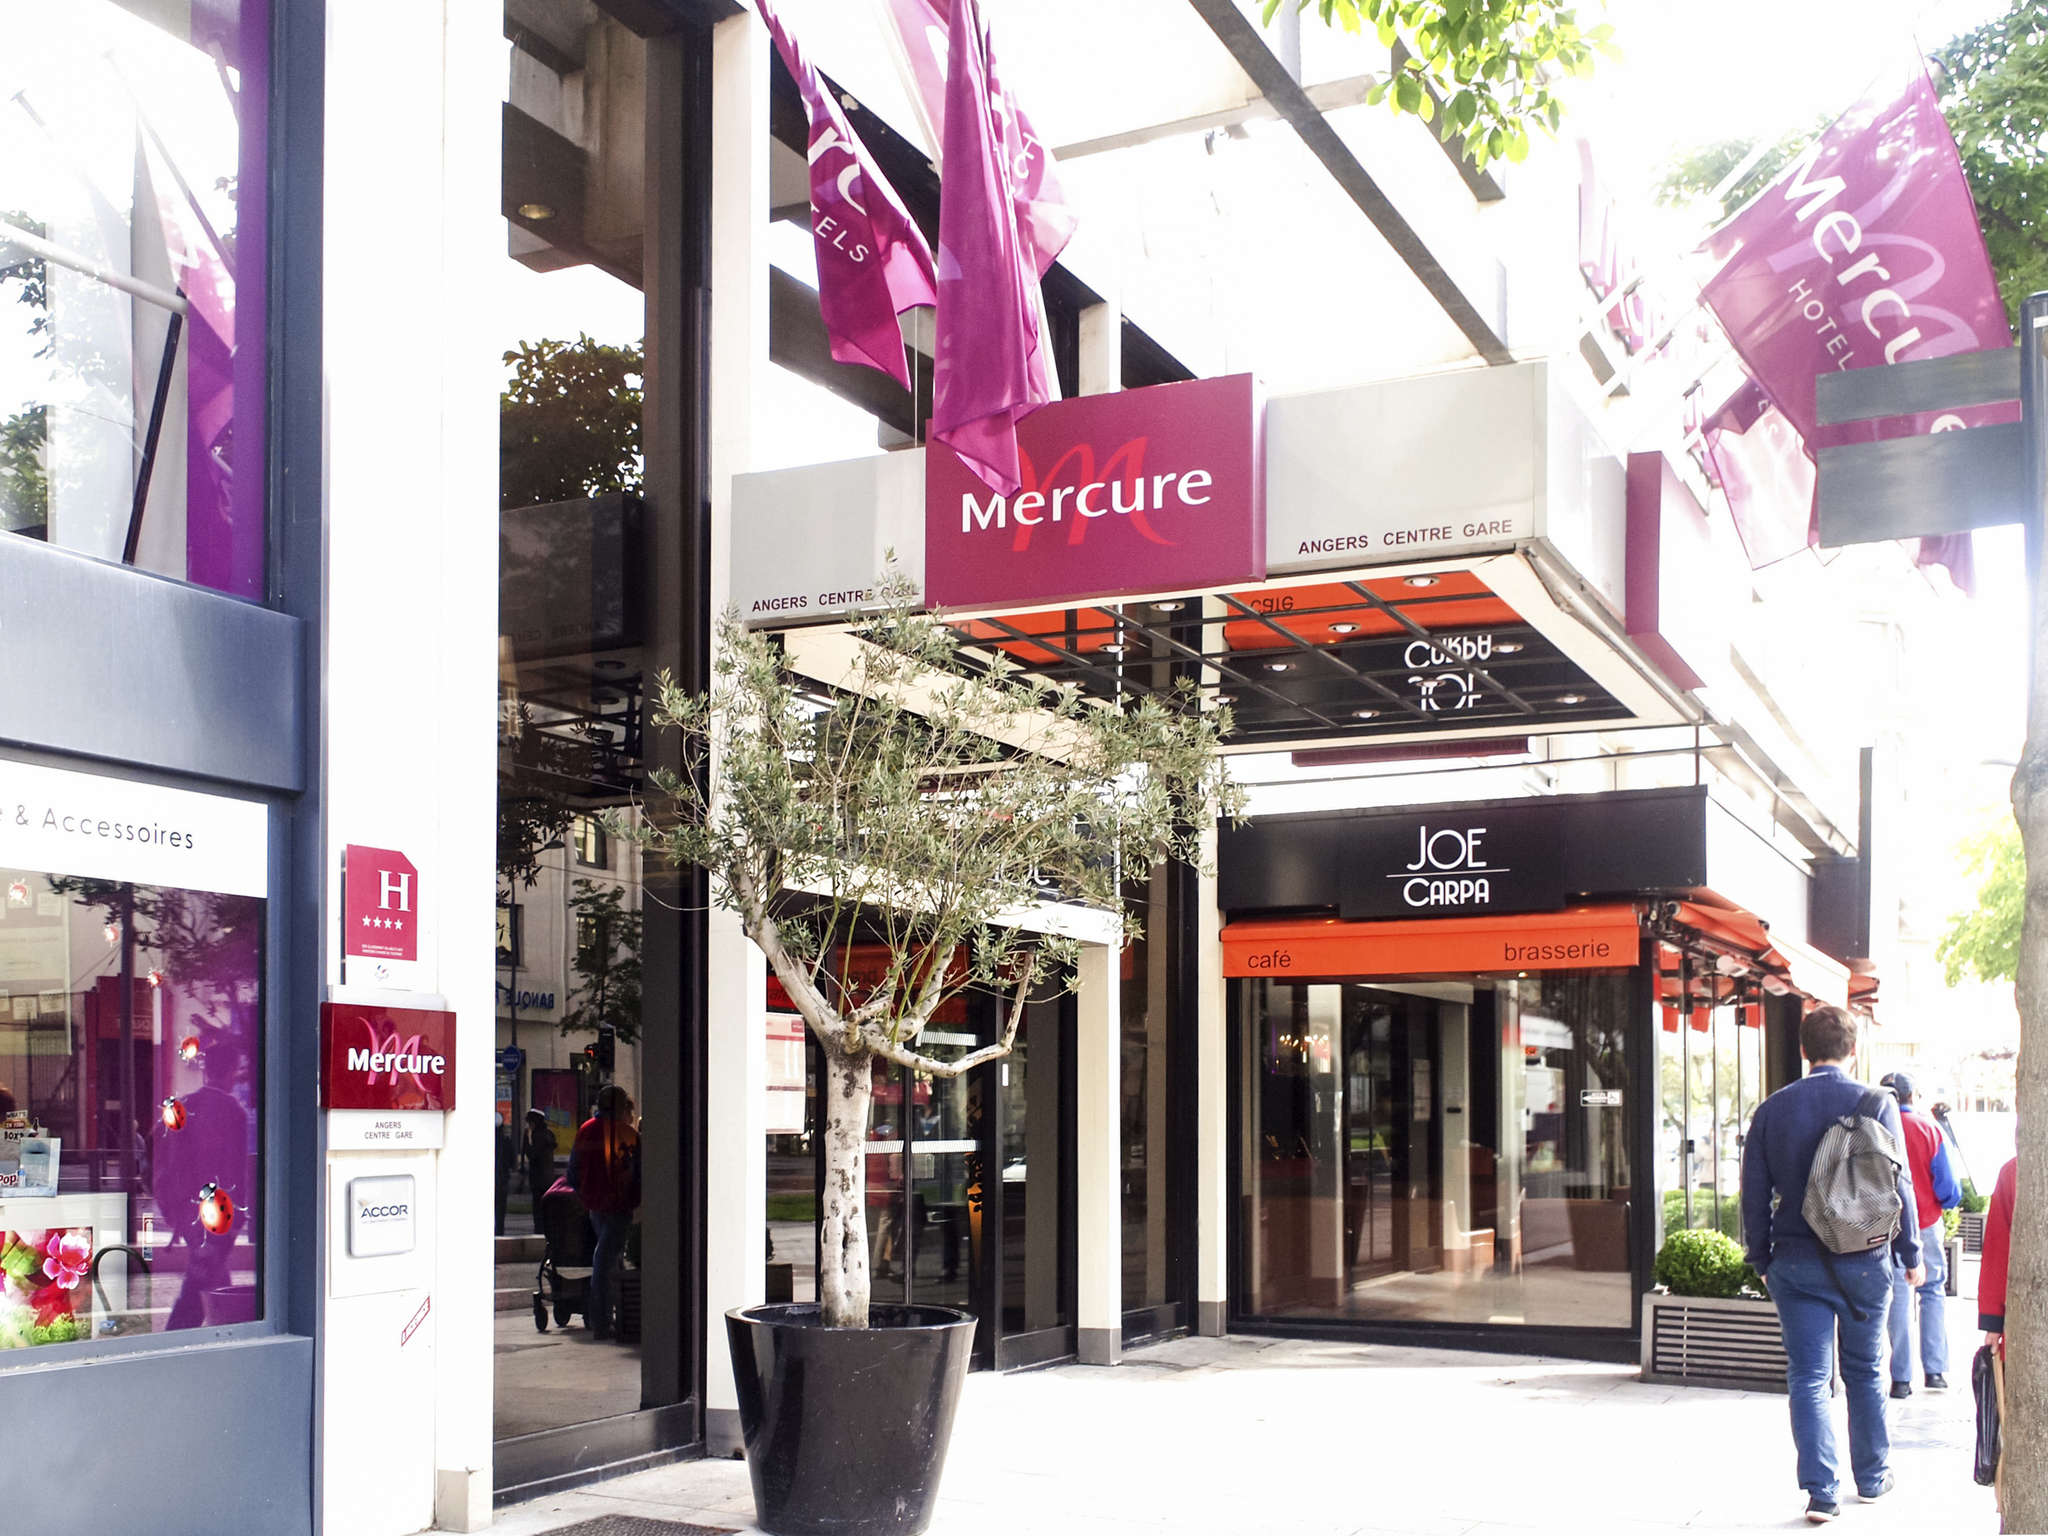 Hotell – Hôtel Mercure Angers Centre Gare